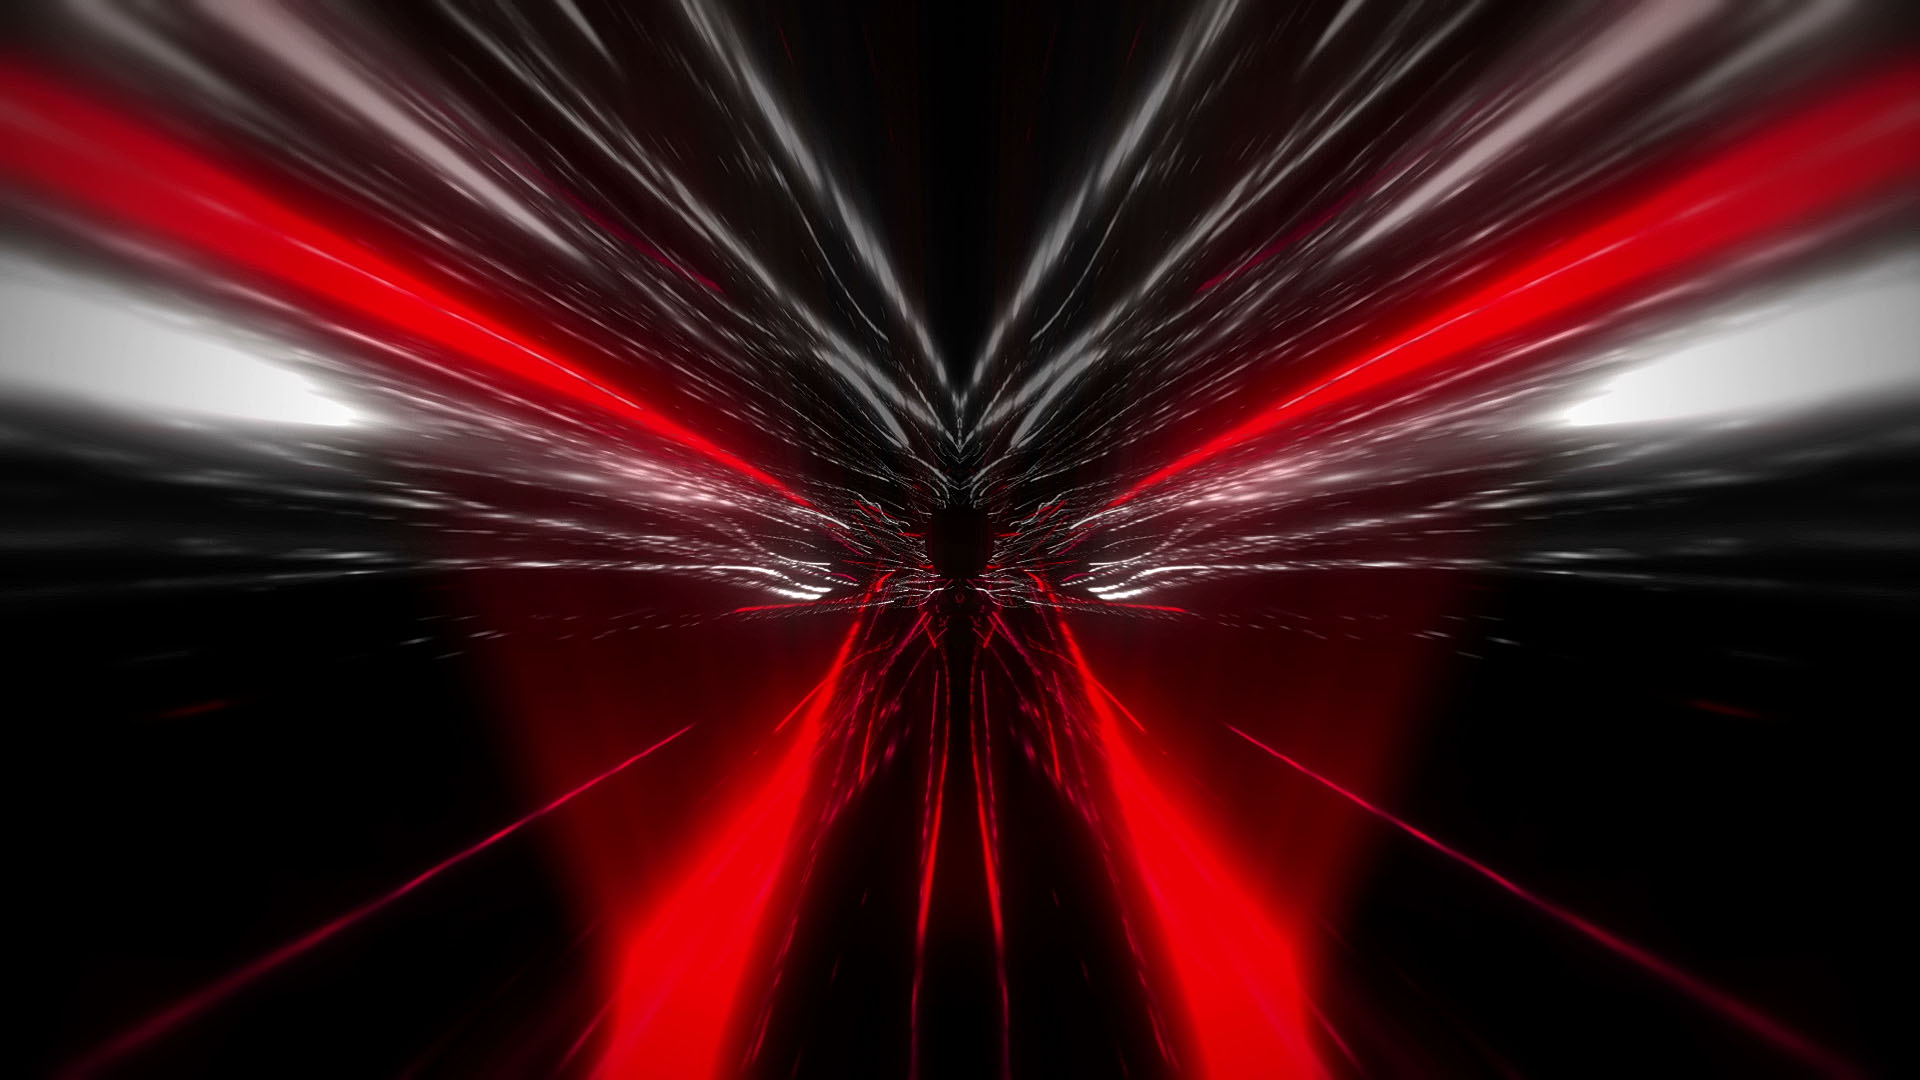 motion_tunnel_vj_loops_Layer_10